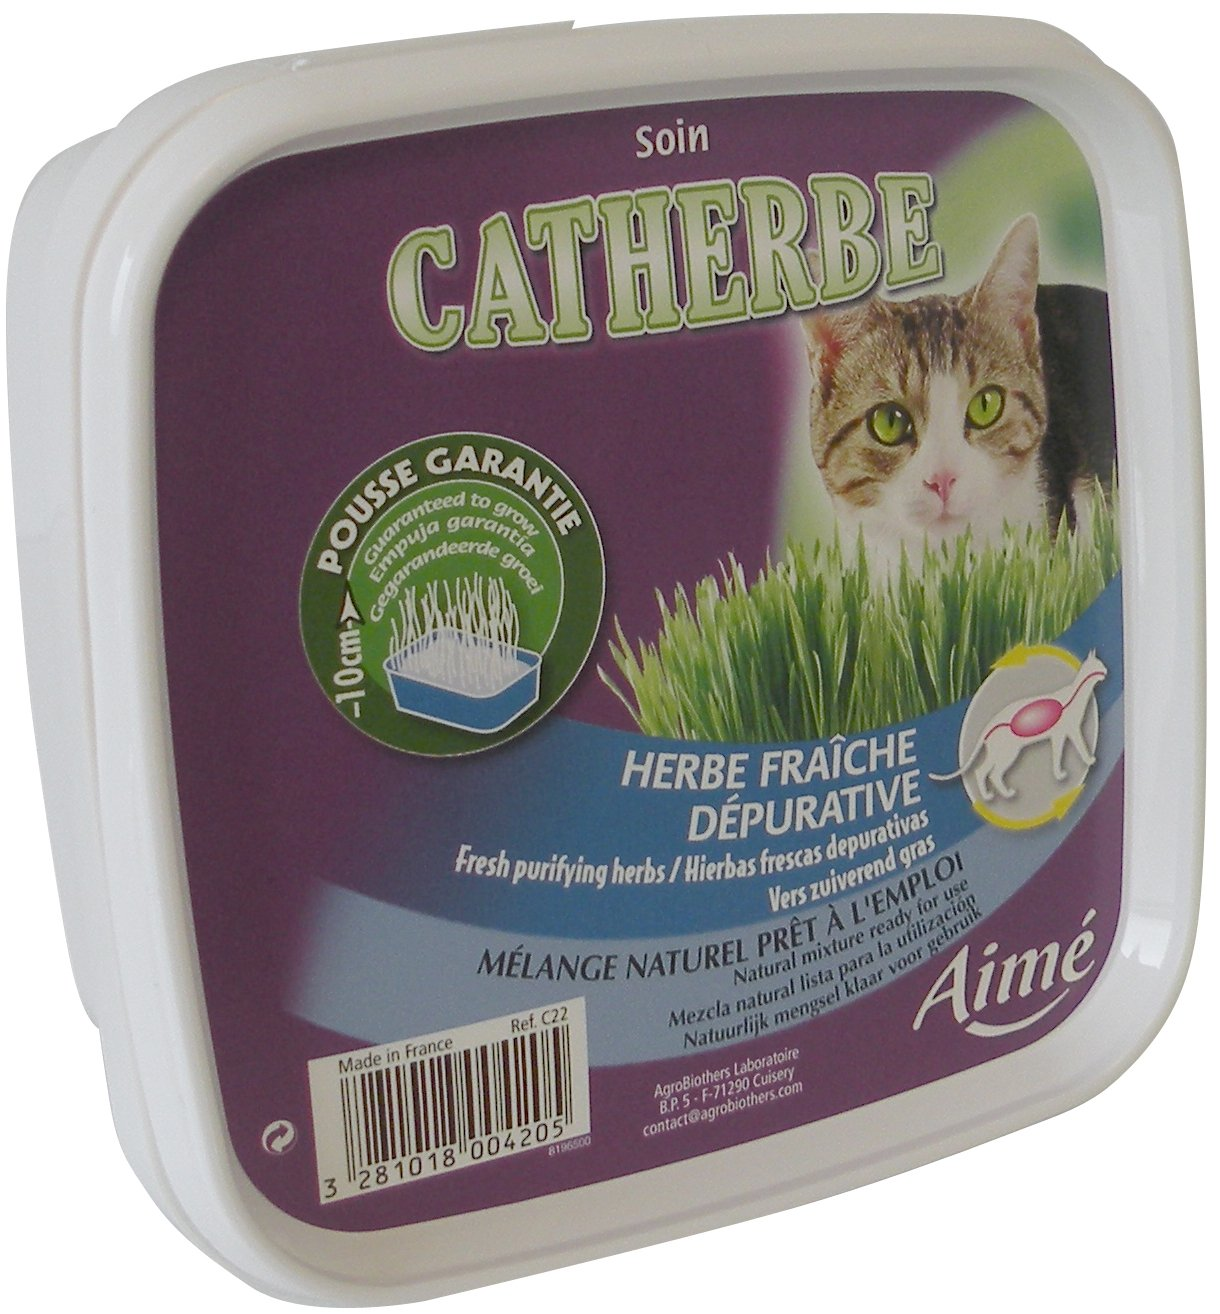 Aime Catherbe pour Chat - Lot de 7 Agrobiothers C22